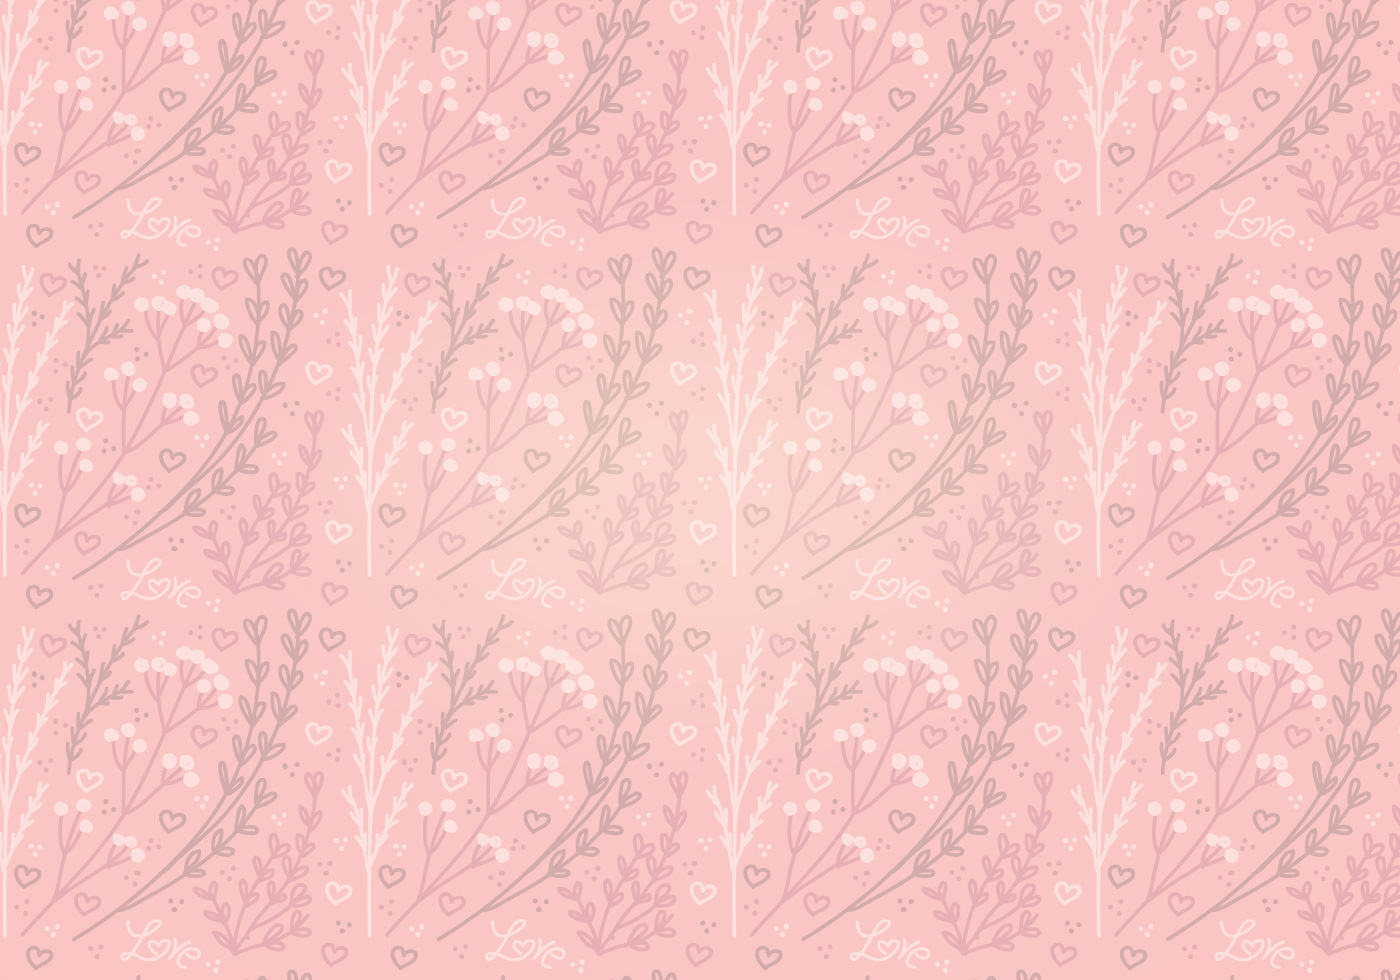 Seamless pink floral pattern - photo#36